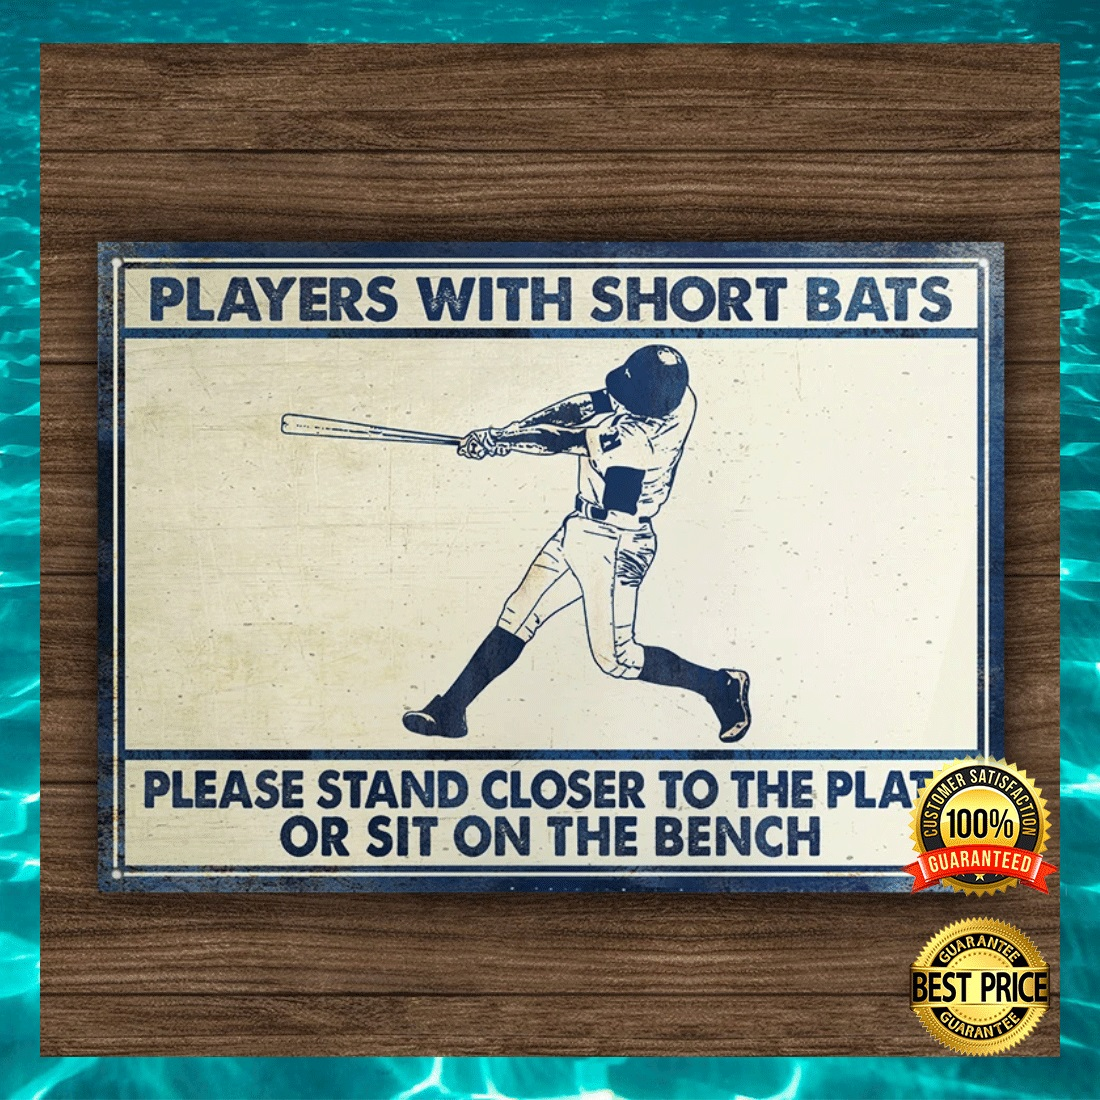 Players with short bats please stand closer to the plate or sit on the bench canvas 4